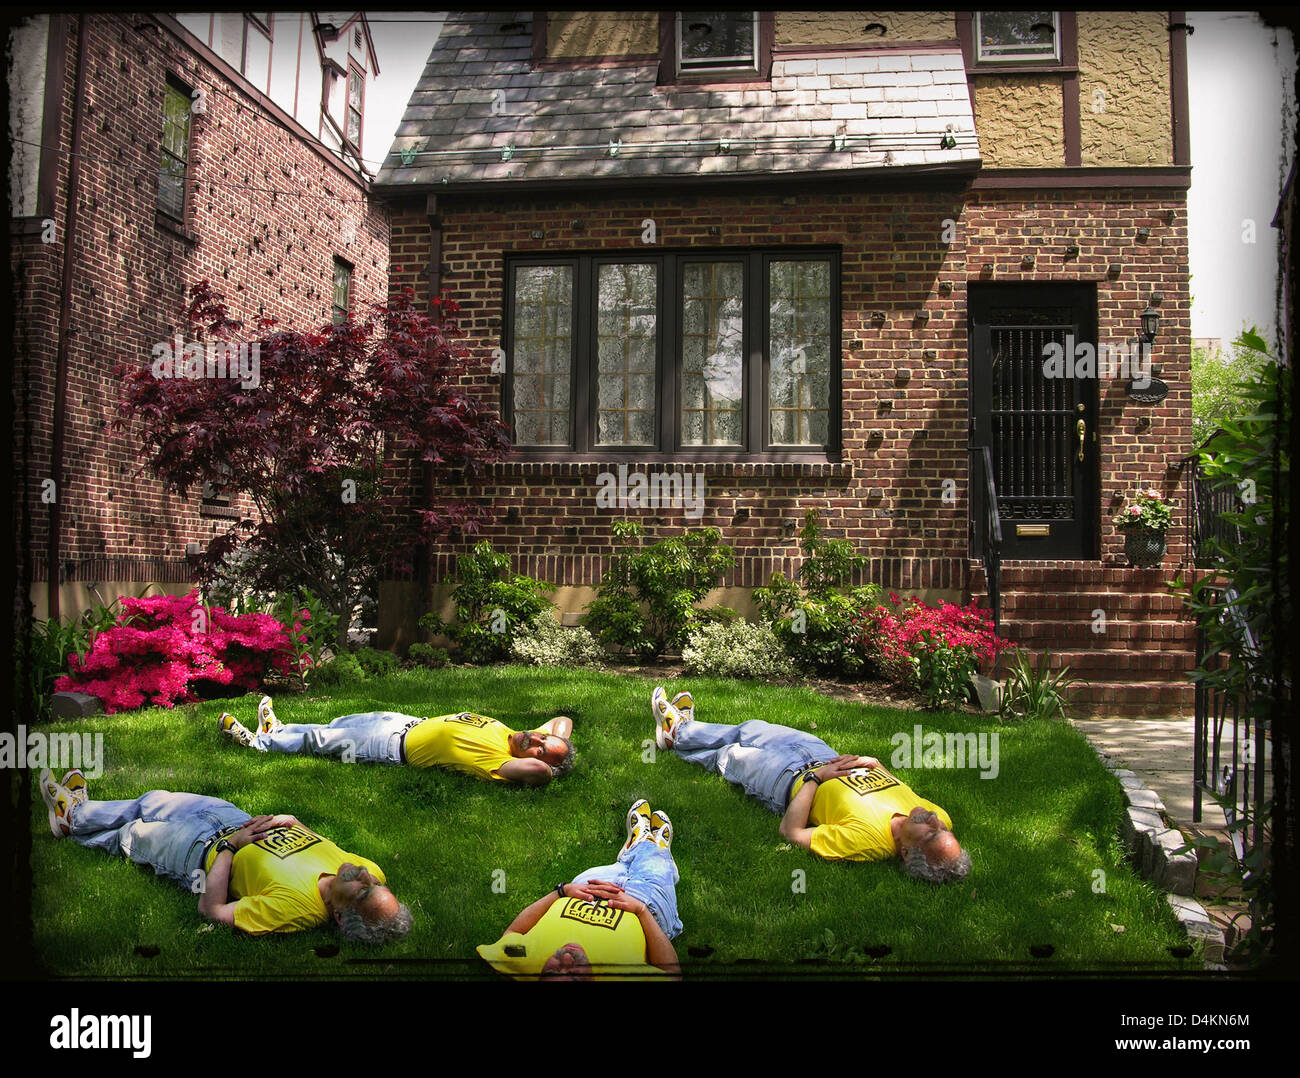 Same person lying in 4 different positions in a yard in front of a Tudor style house in New York City - Stock Image